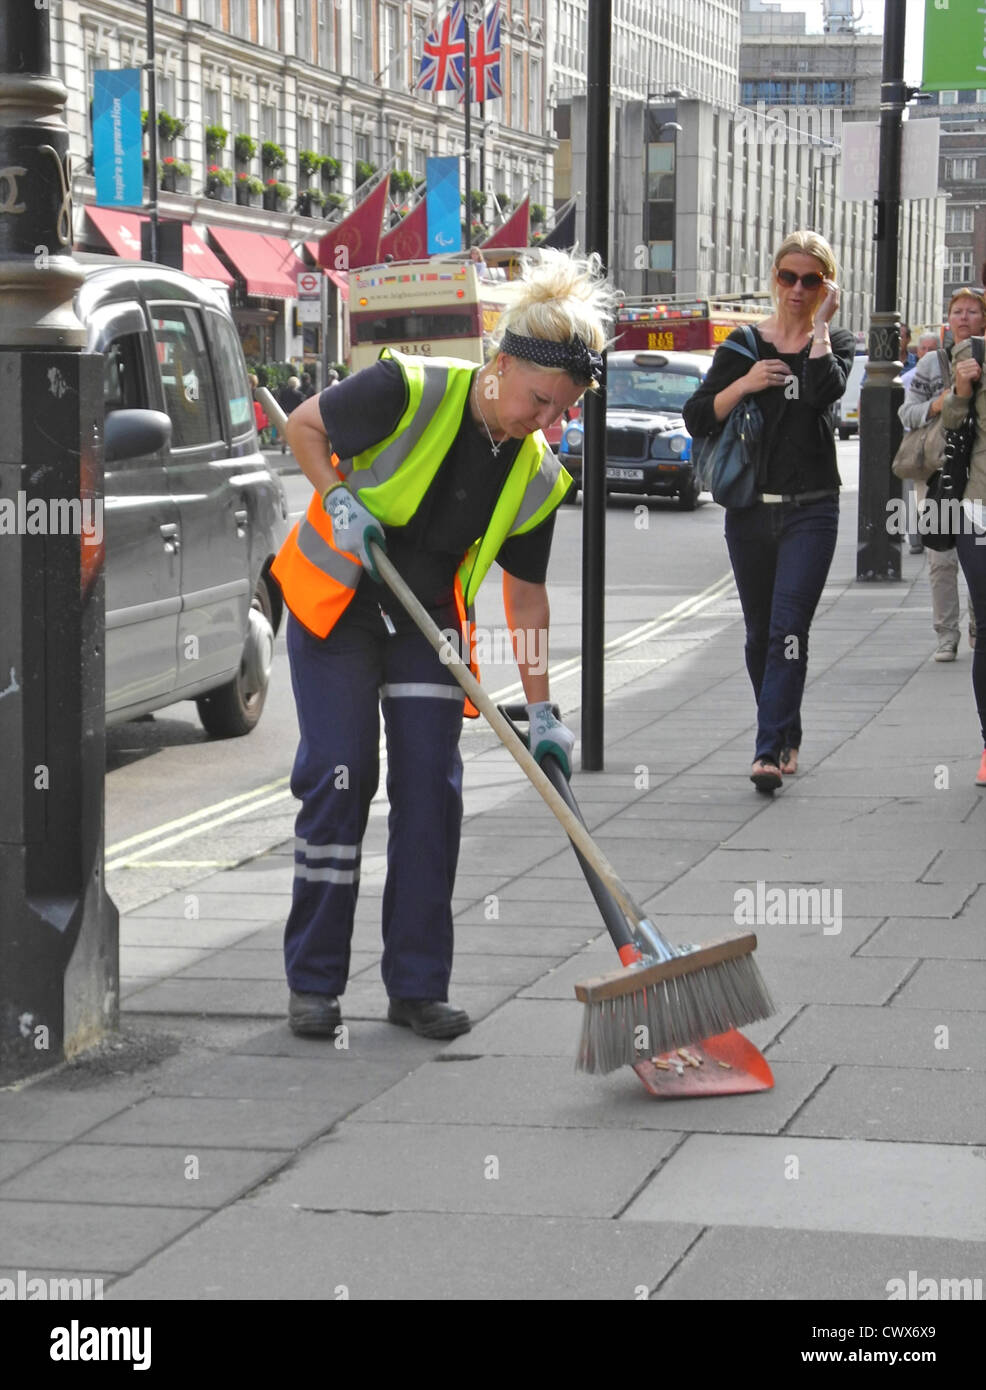 A London female woman lady street cleaner working on Buckingham Palace Road EDITORIAL USE ONLY - Stock Image